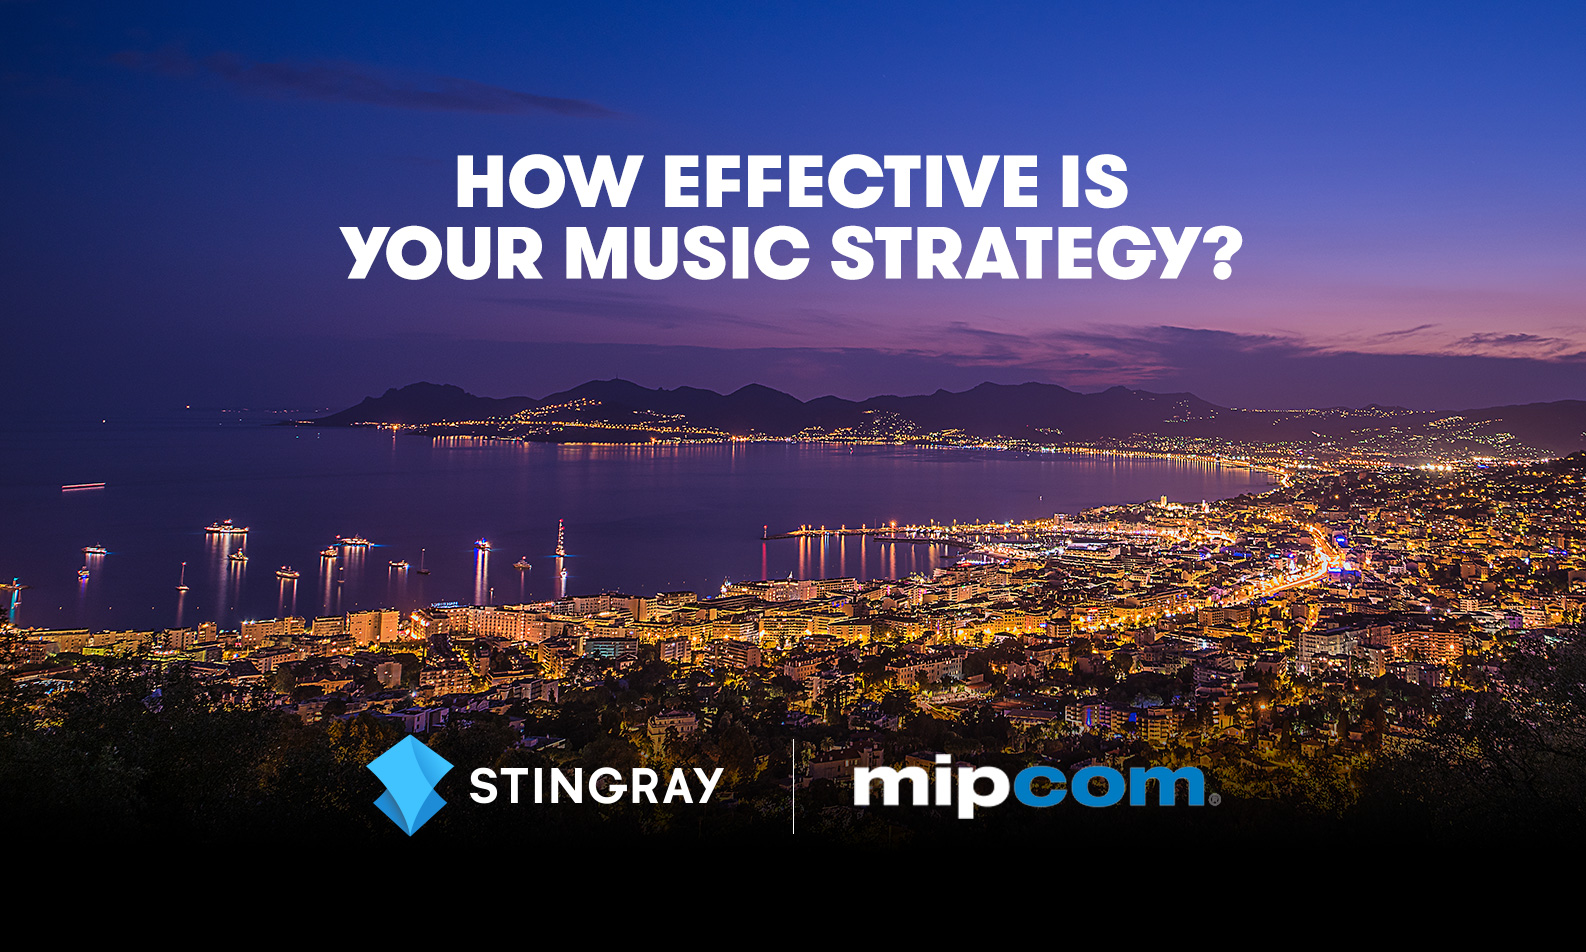 Meet Stingray at MIPCOM 2017